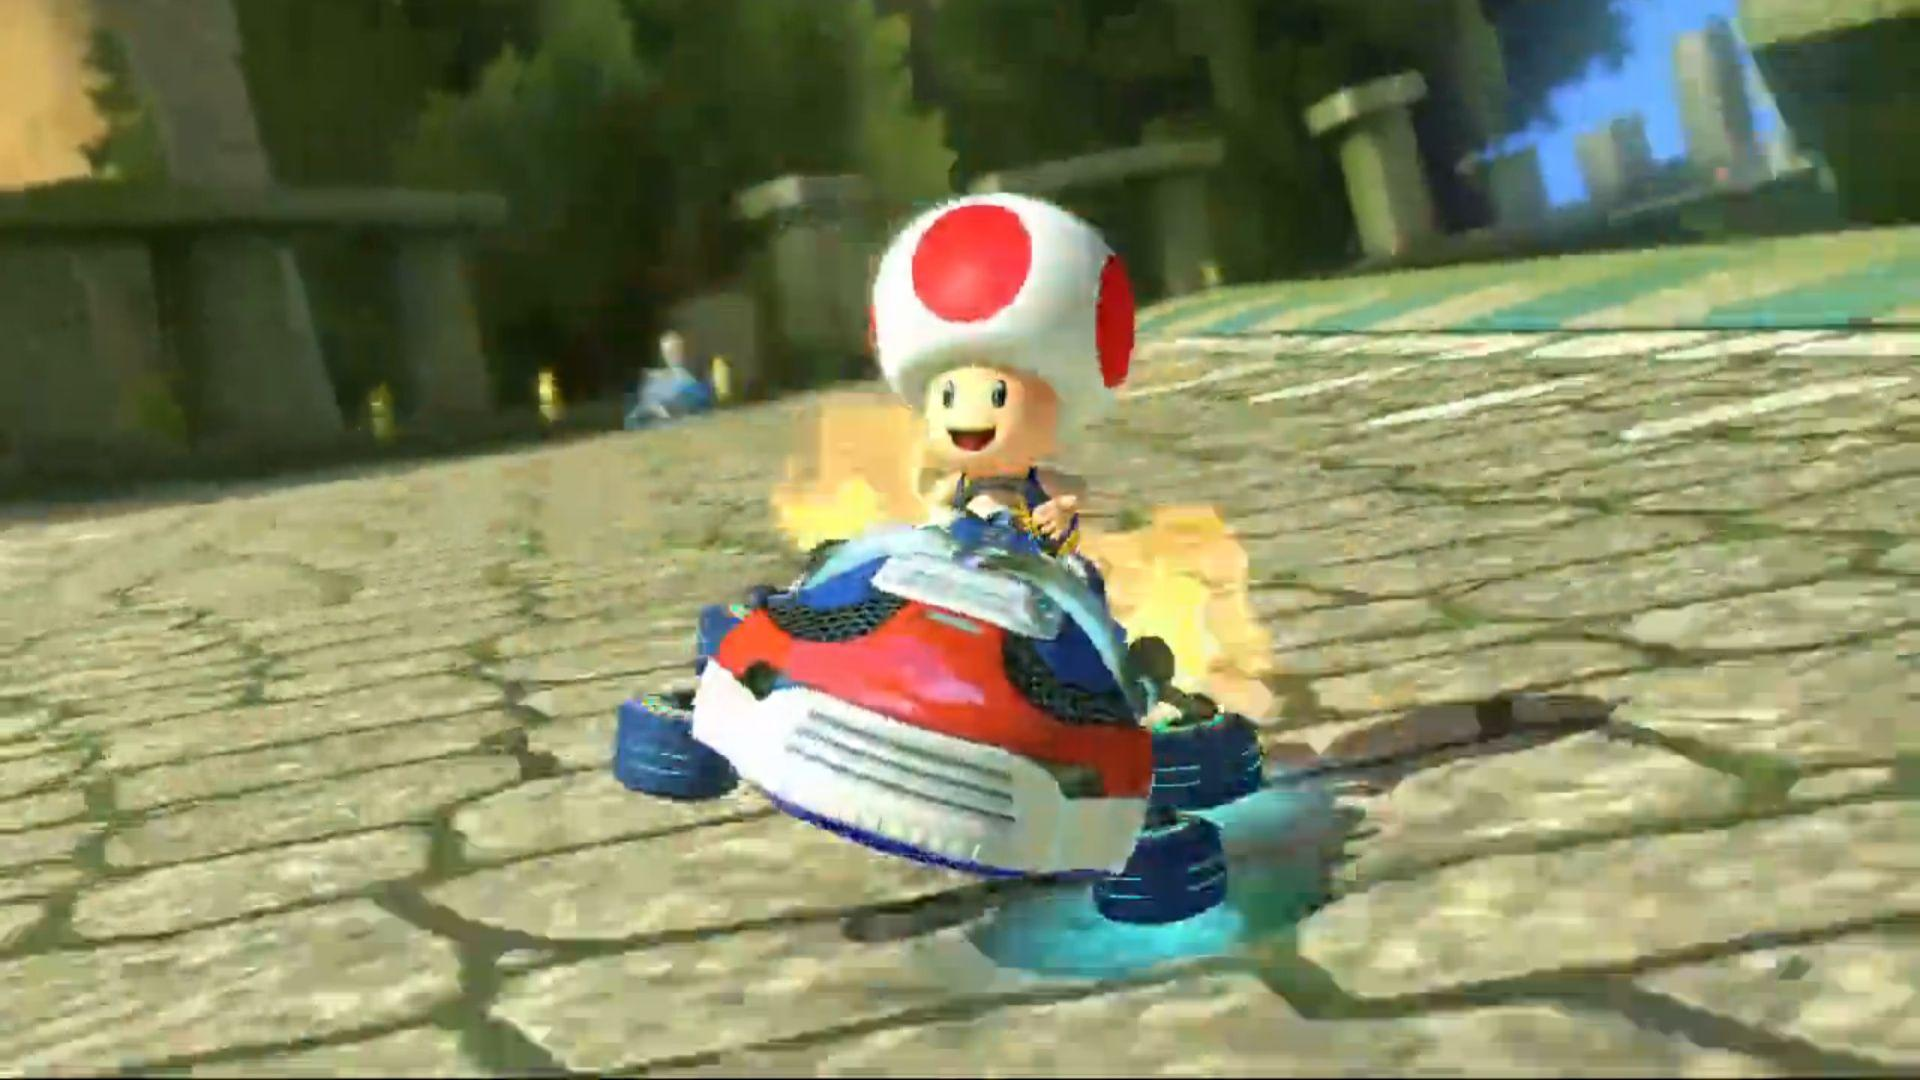 Nintendo Roots For Seattle Seahawks in Super Bowl With Mario Kart 8